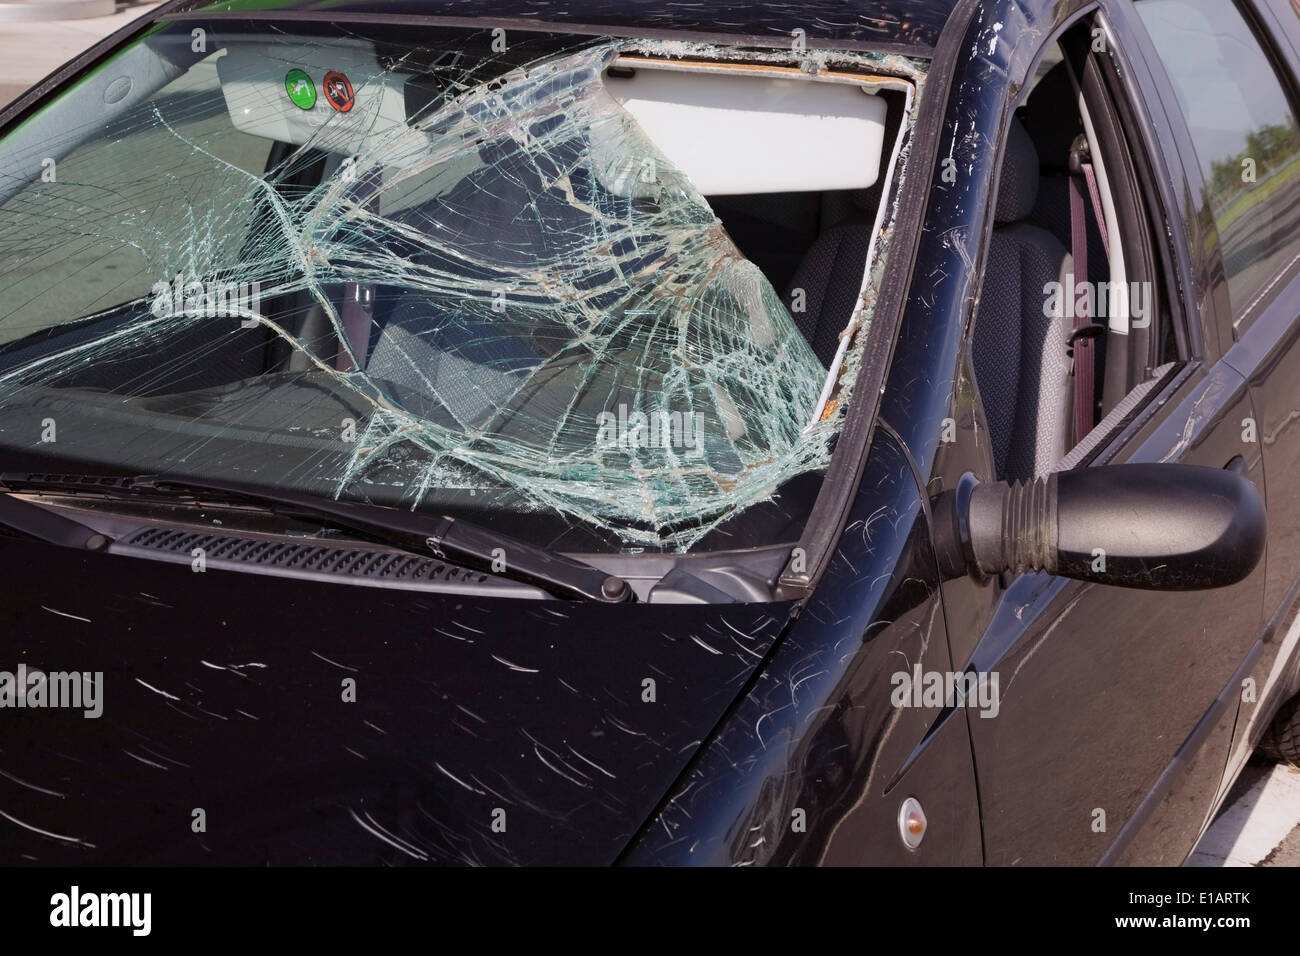 Black compact car with an accident-damaged windshield, Hungary - Stock Image